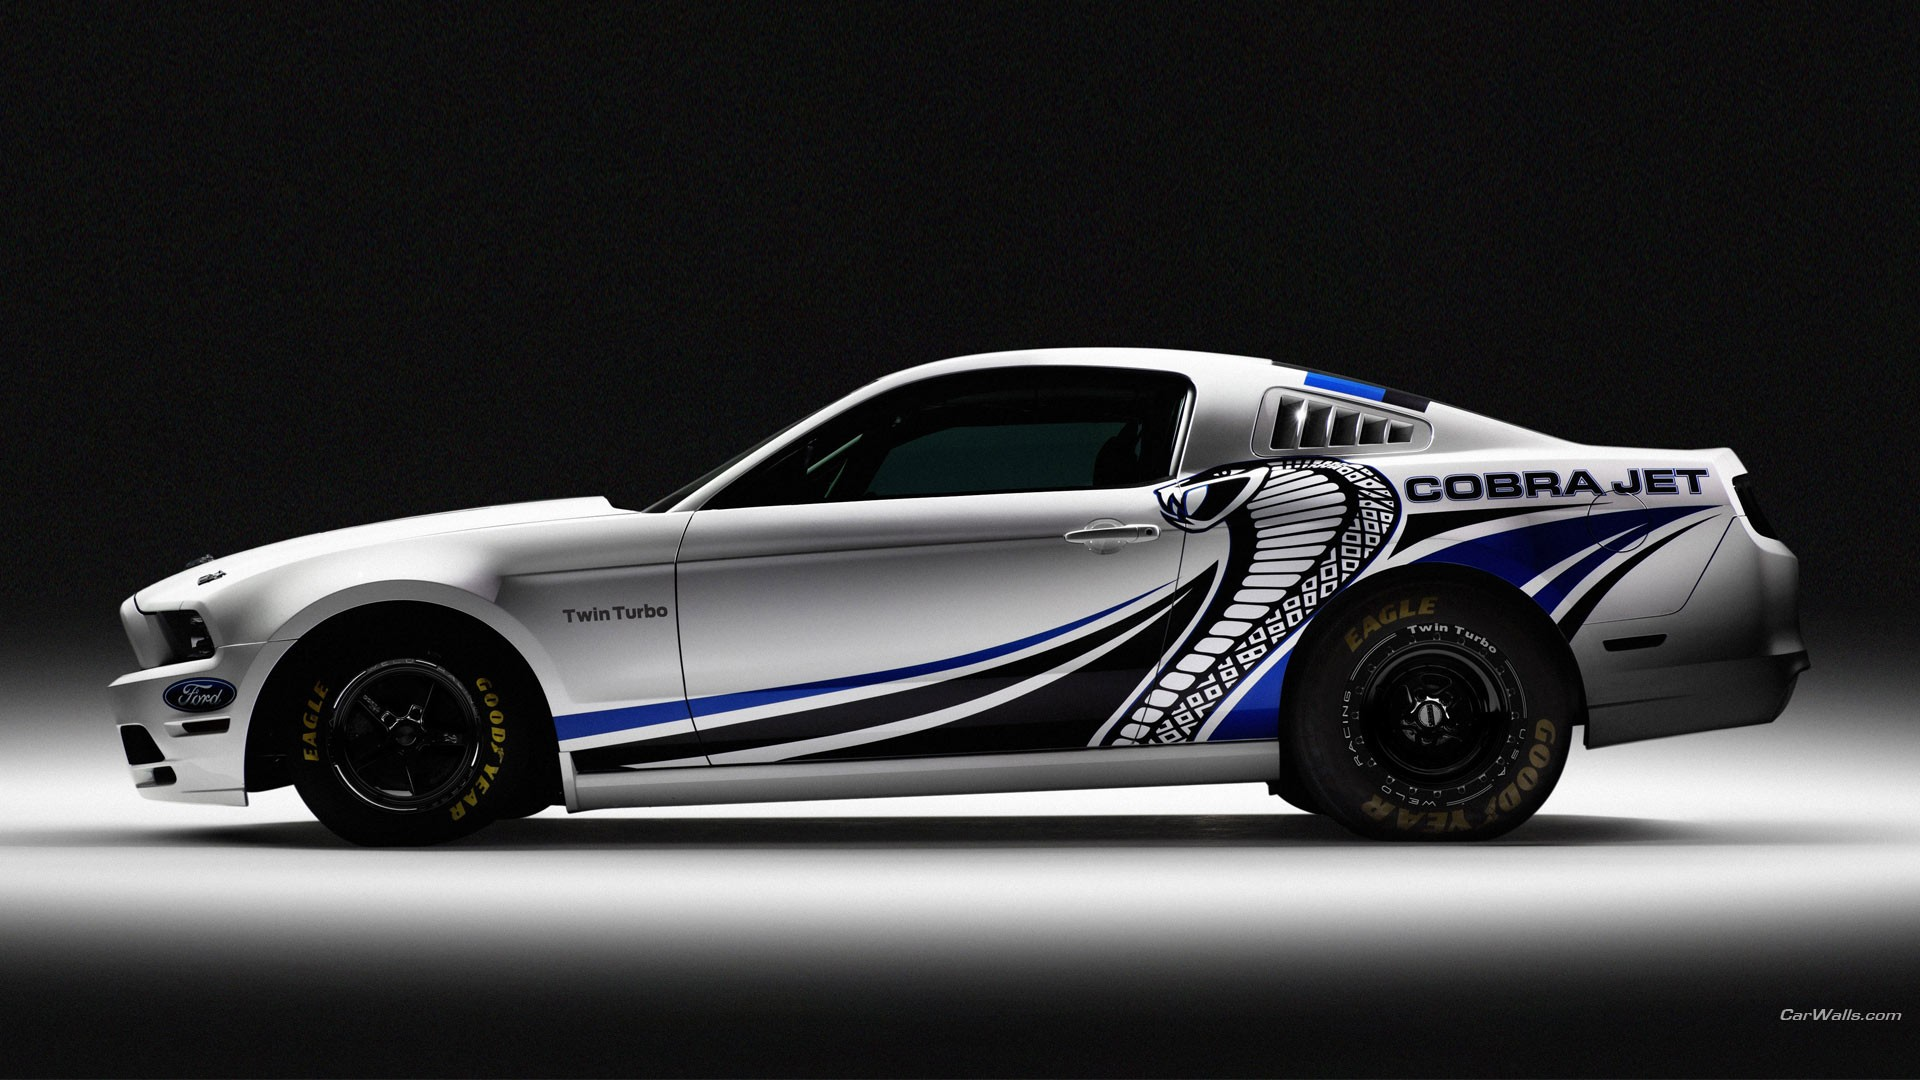 cars concept cars ford mustang shelby mustang twin turbo tuned ford mustang cobra jets cobra jet wallpaper 1920x1080 224584 wallpaperup